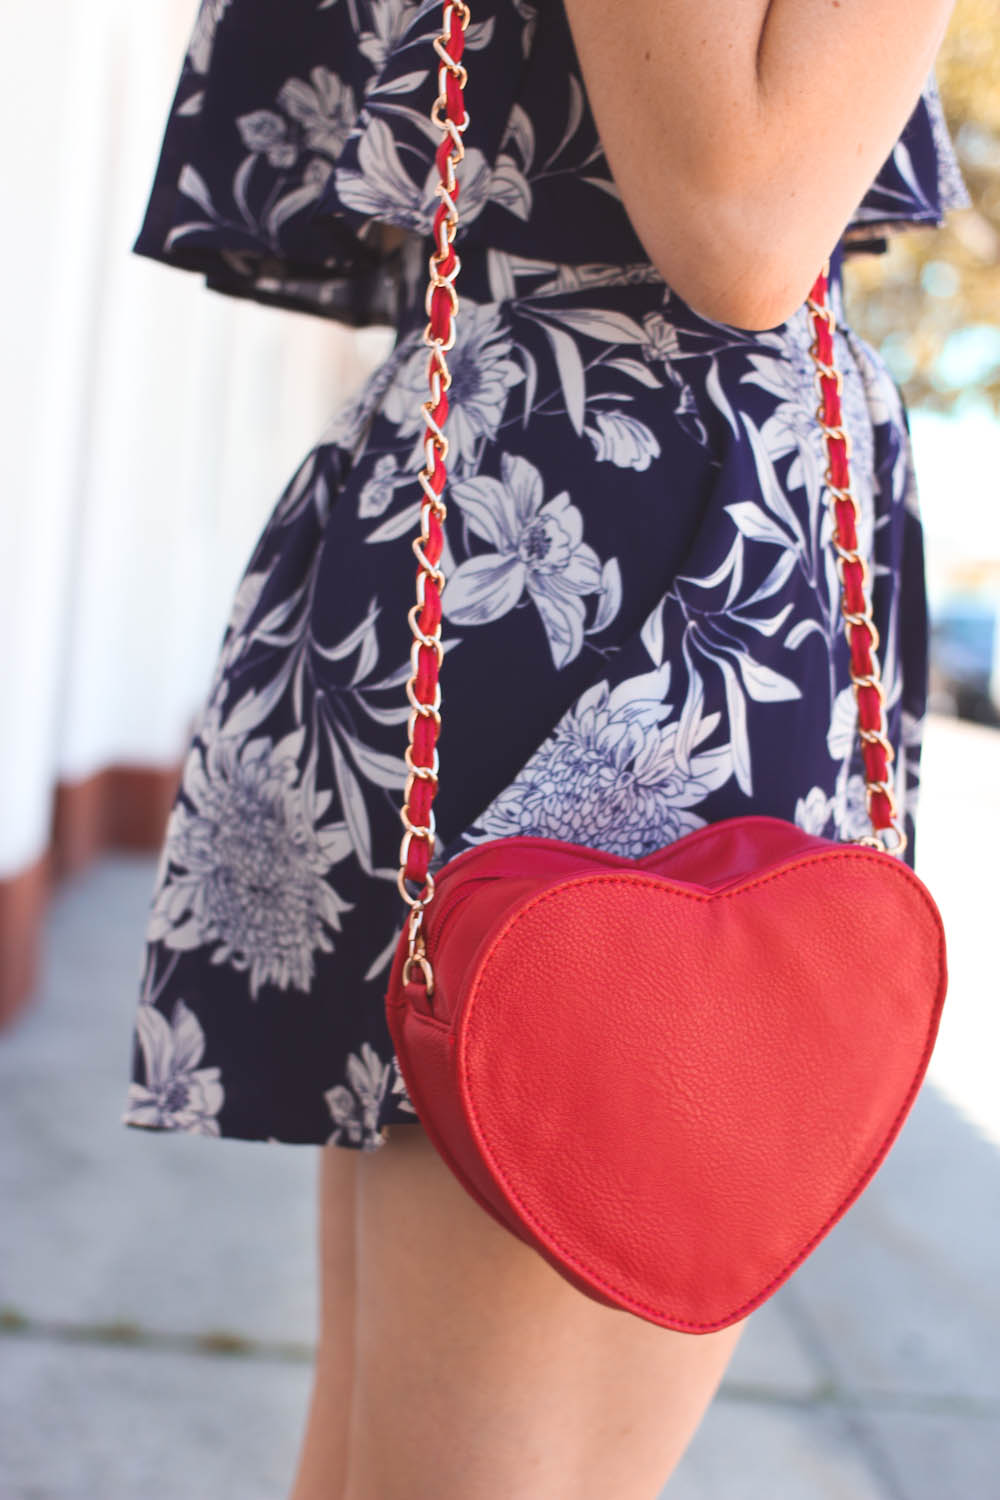 LuLu's floral set, red heart bag, nyc vintage fashion blog, nyc fashion blog, nyc fashion blogger, long beach ny